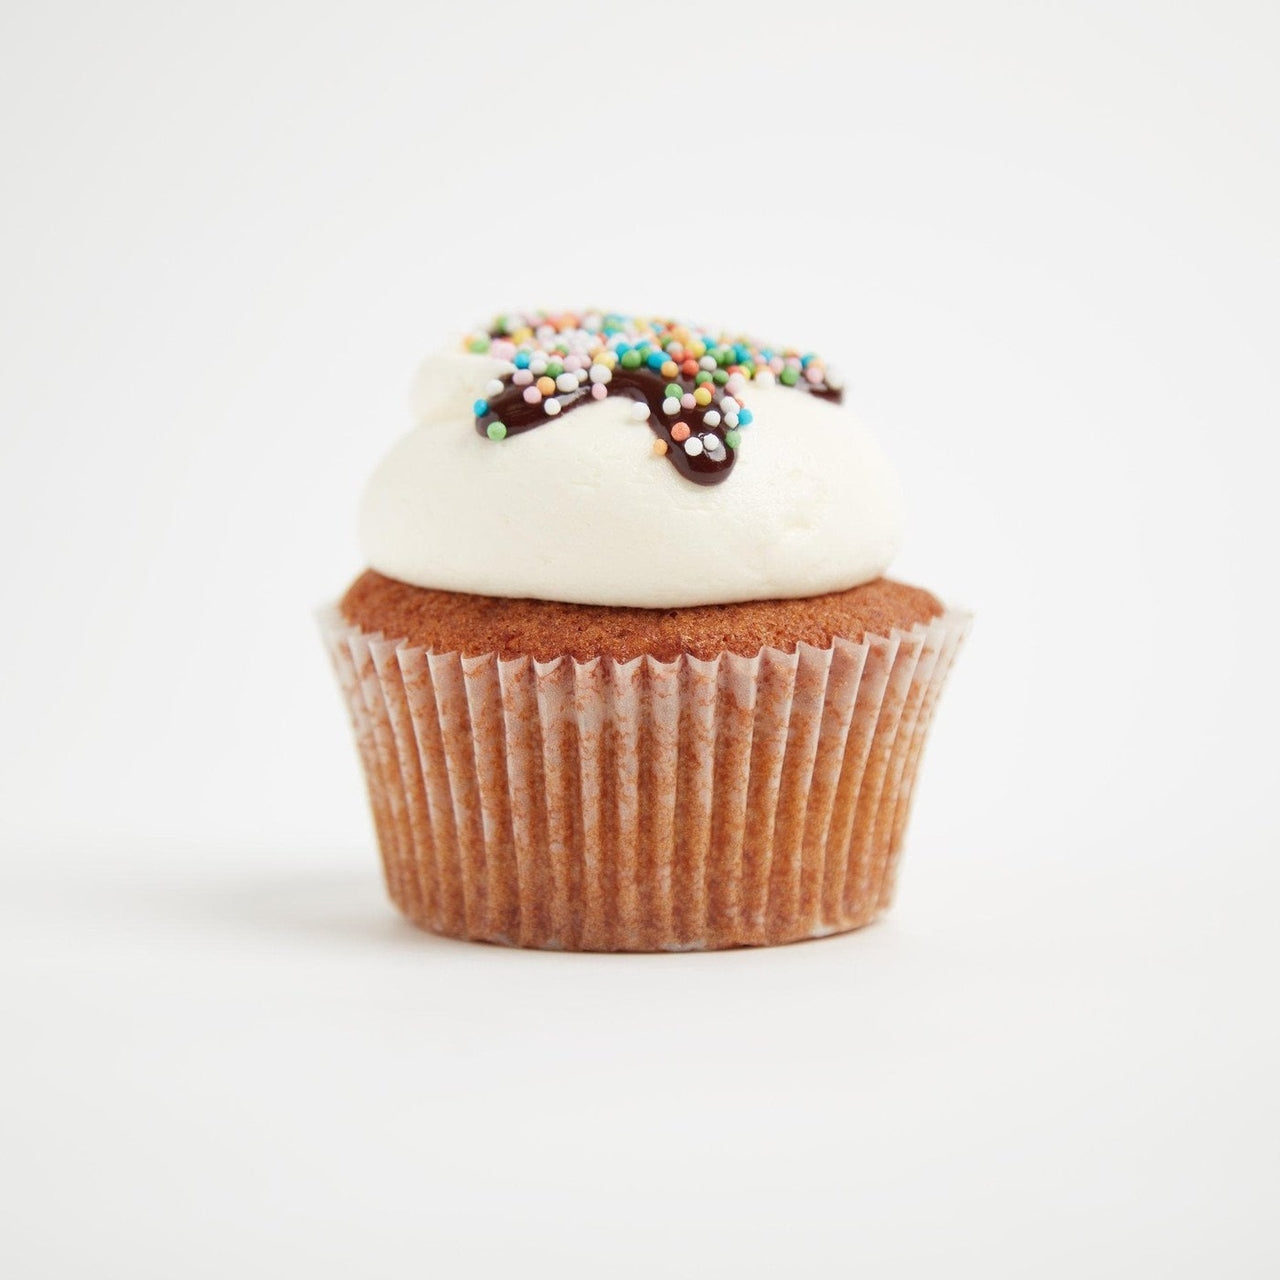 Neapolitan Cupcakes by Crumbs & Doilies